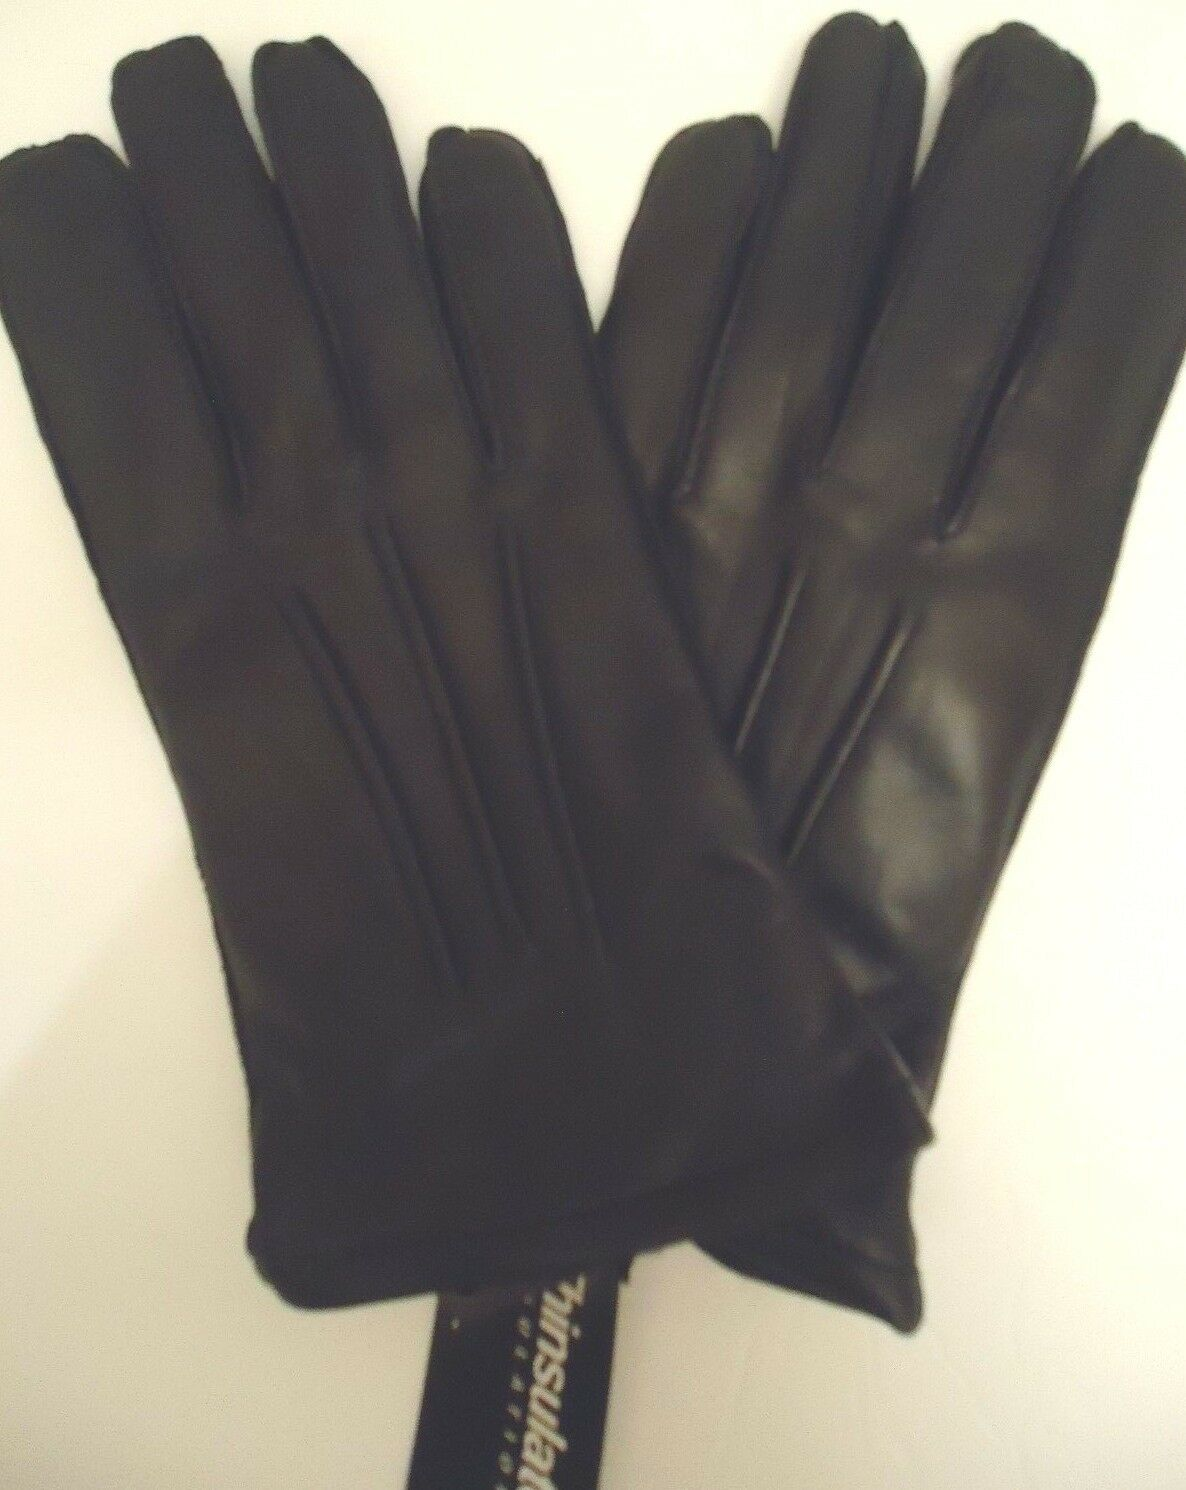 Thinsulate leather driving gloves - Men S Avalanche Thinsulate Genuine Leather Driving Gloves Black Medium Style789b 3 3 Of 3 See More